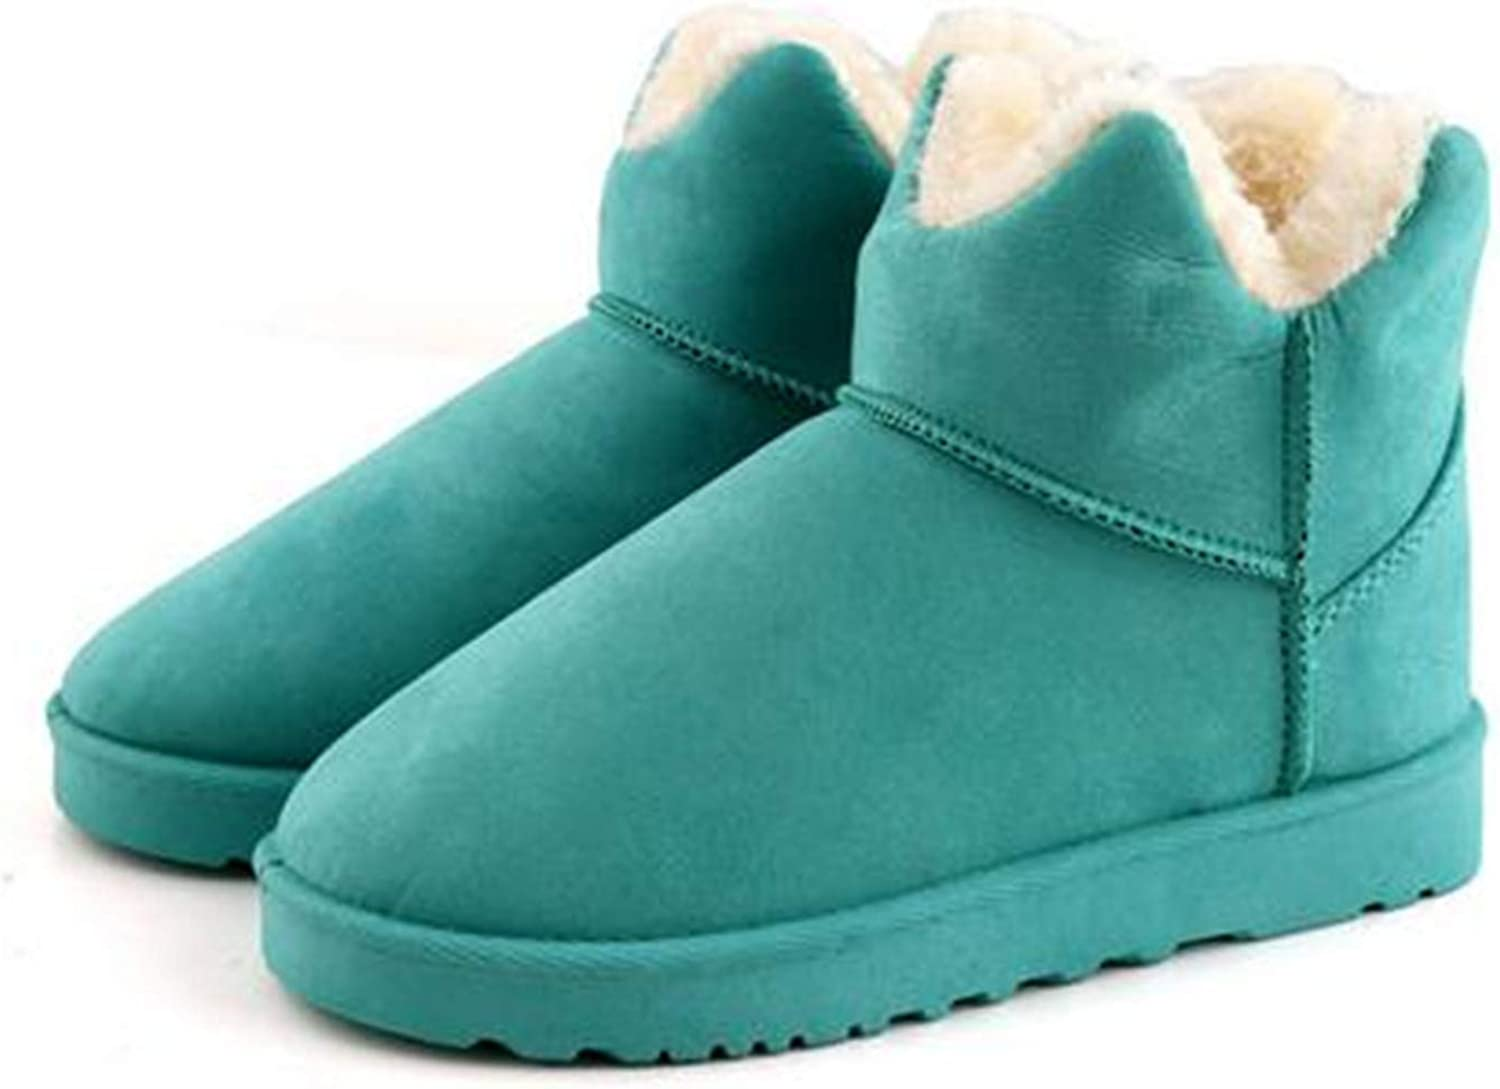 Kongsta New Women Snow Boots Fashion Fur Snow Ankle Boots Warm Winter Boots Woman shoes